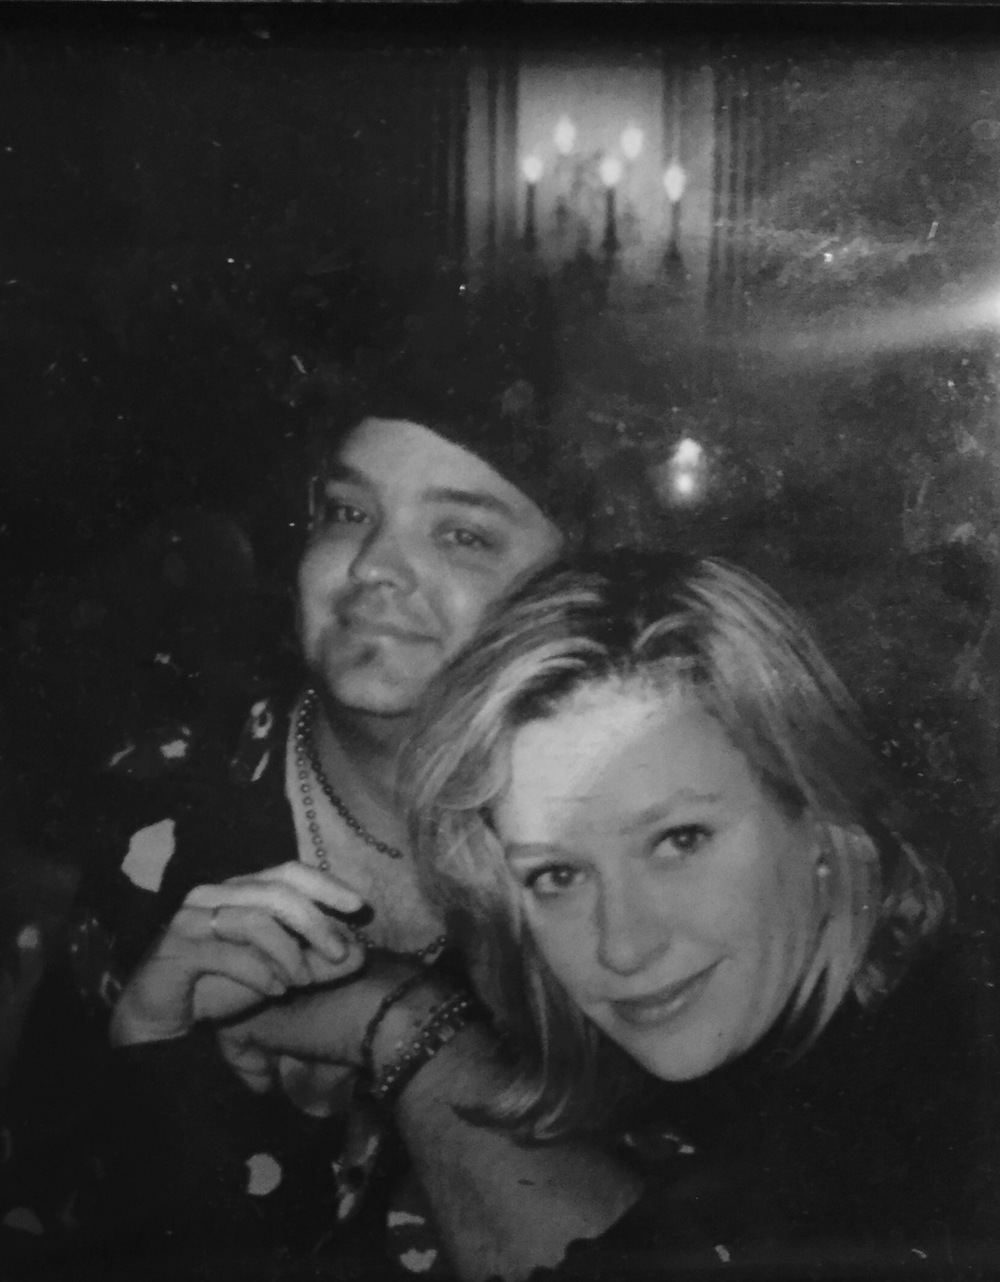 Kevin T. White with Shelby Lynne